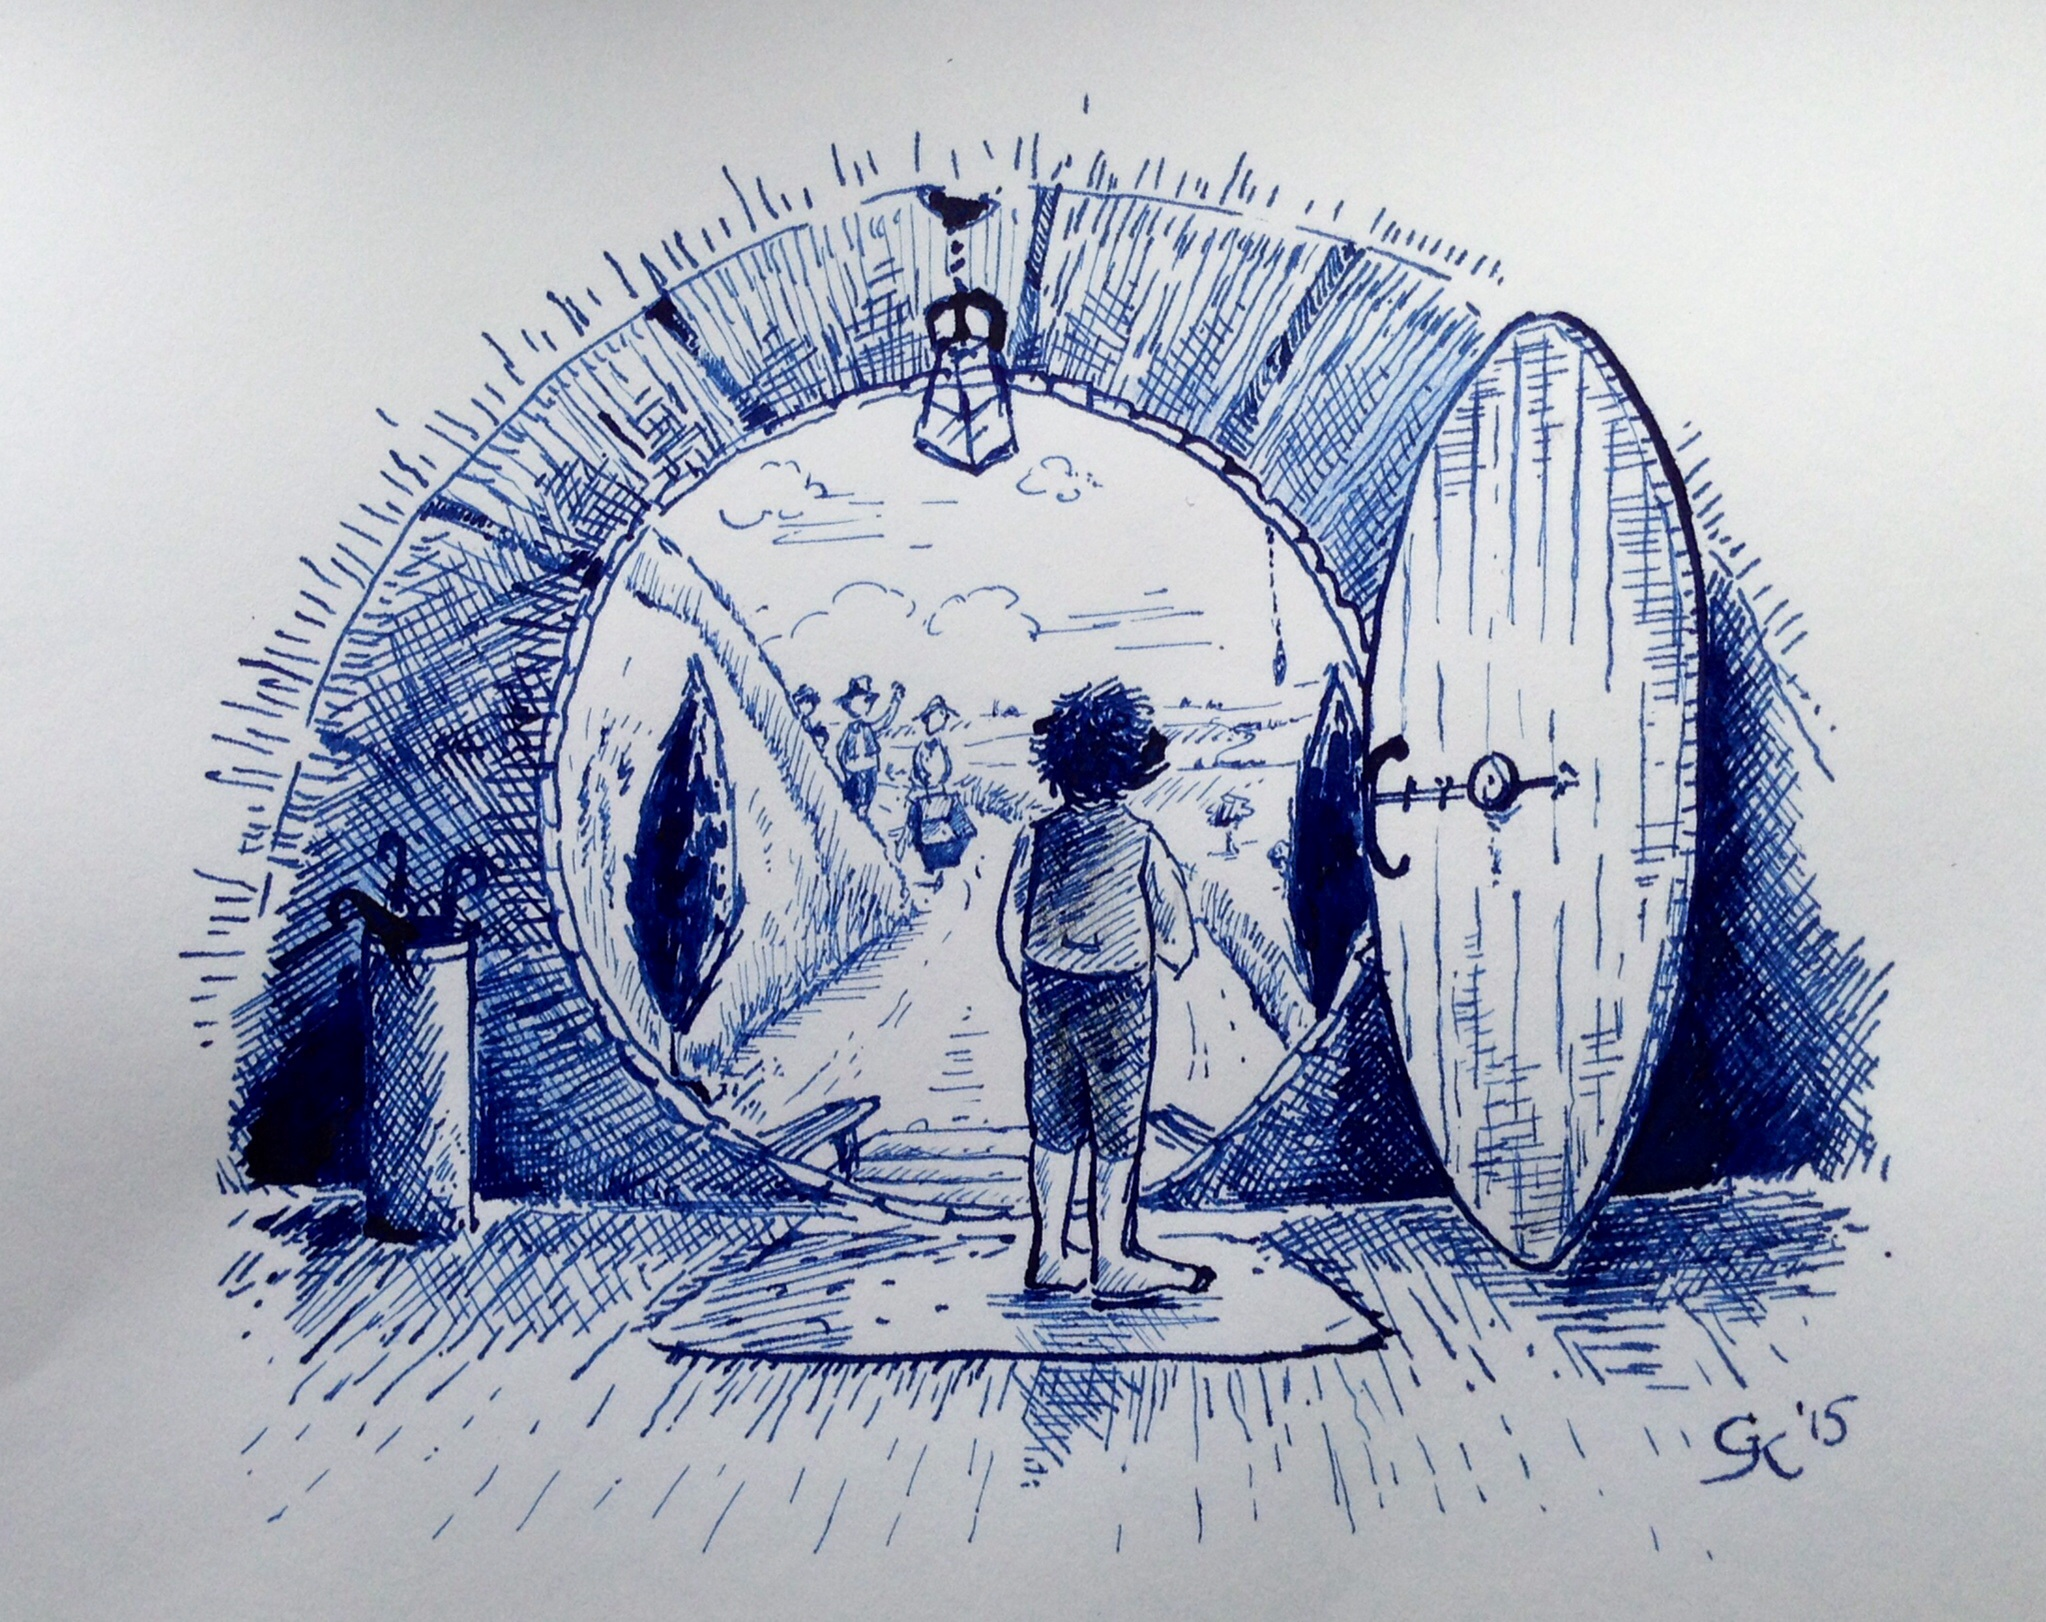 2046x1622 Reading And Drawing The Lord Of The Rings Part 2 Enter Frodo